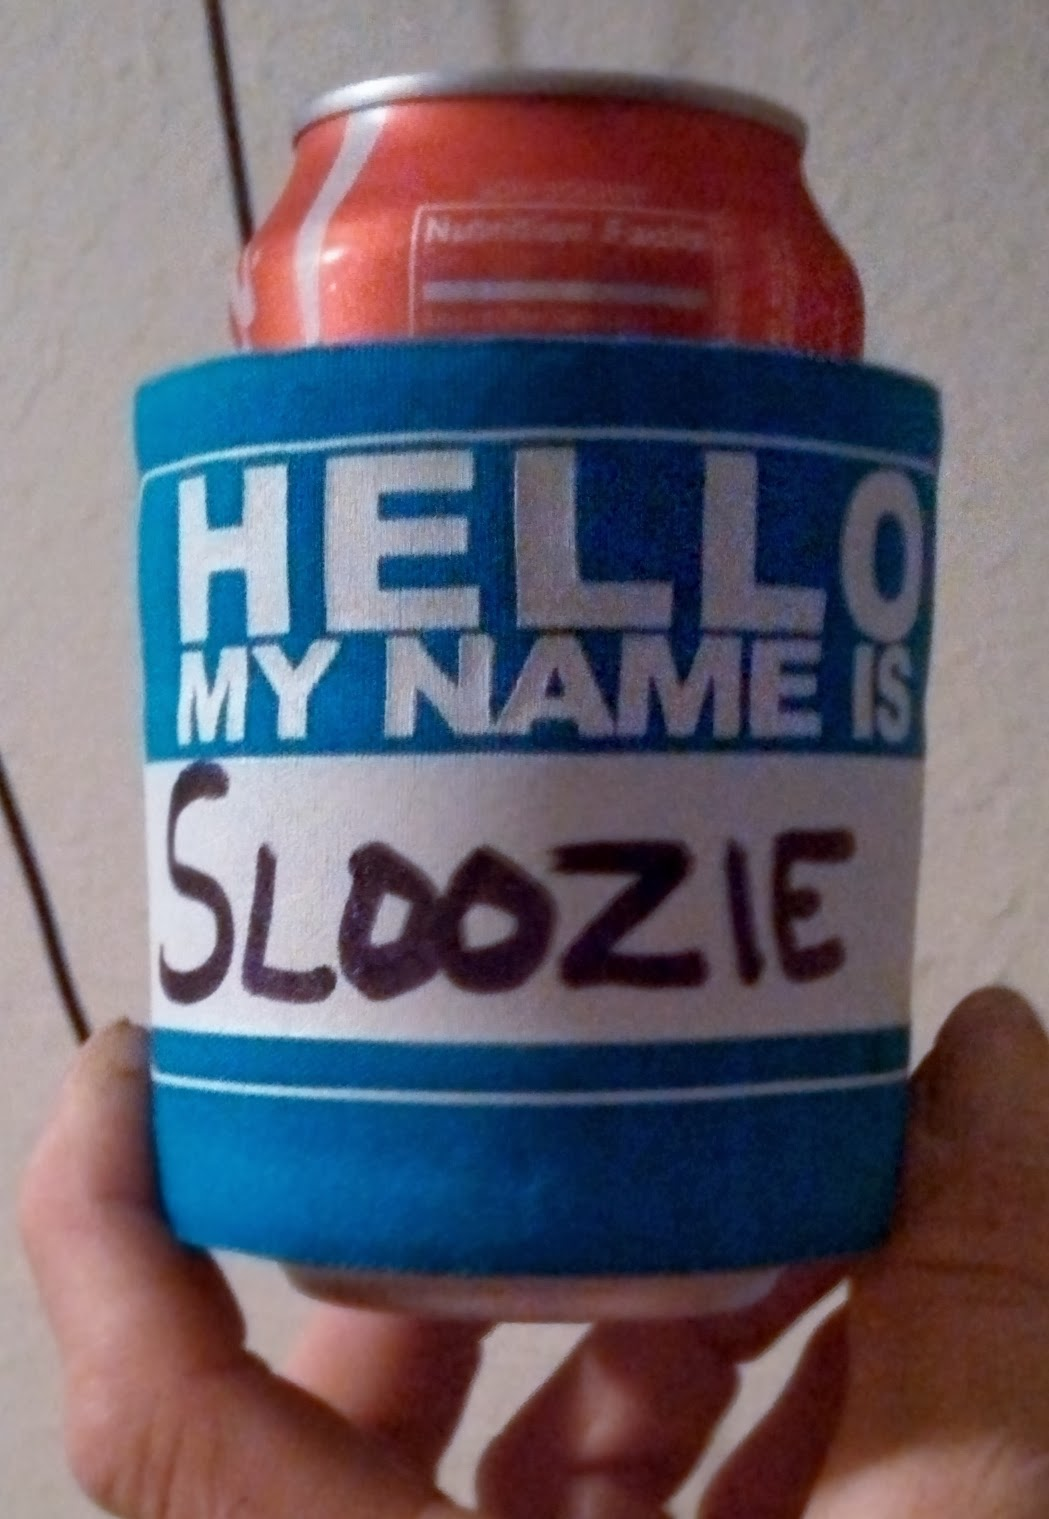 The Sloozie